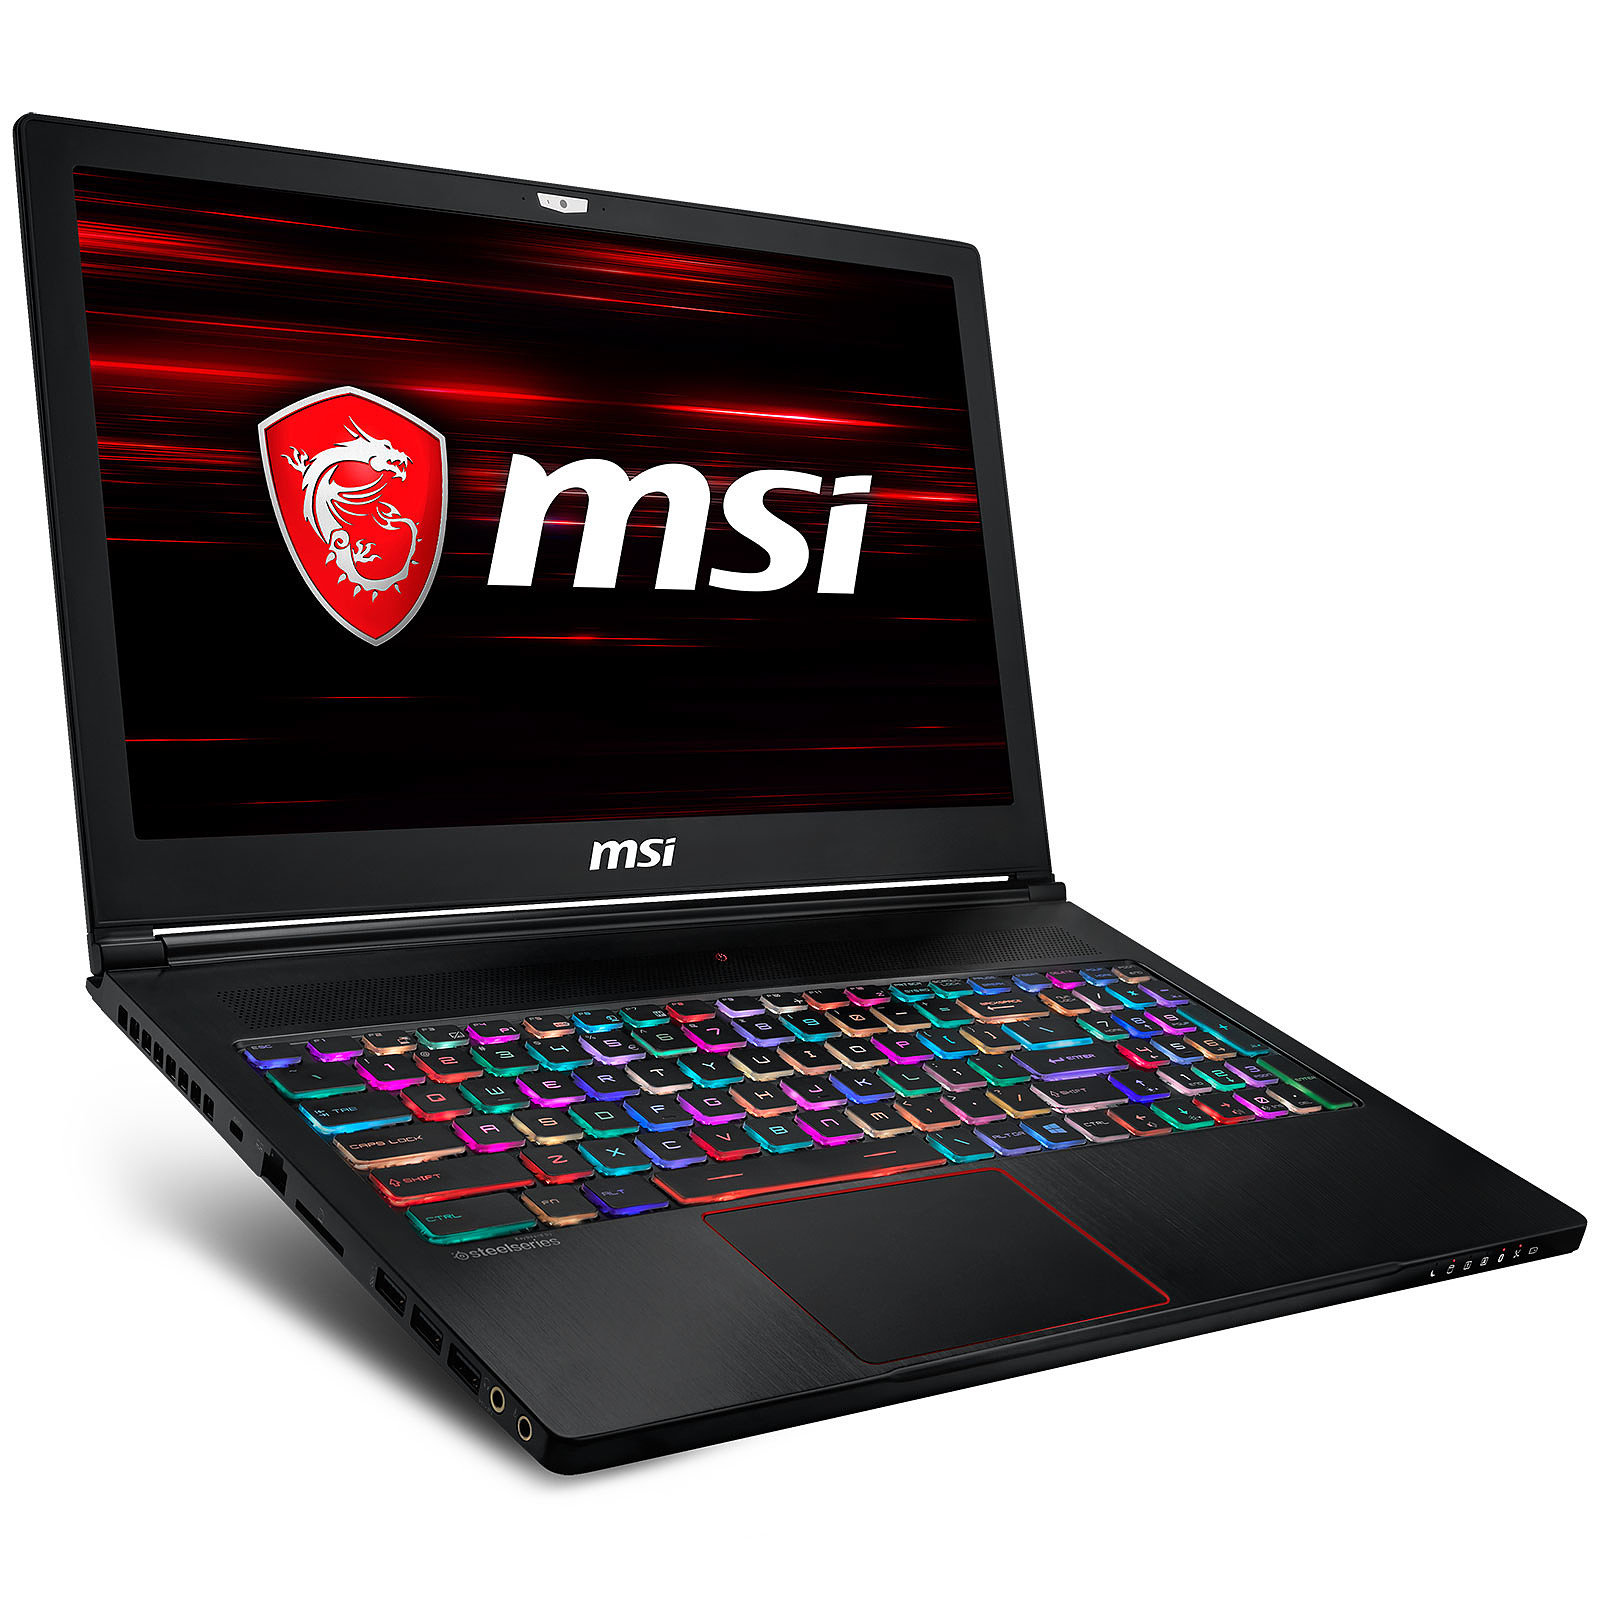 MSI GS63 8RE-017FR Stealth